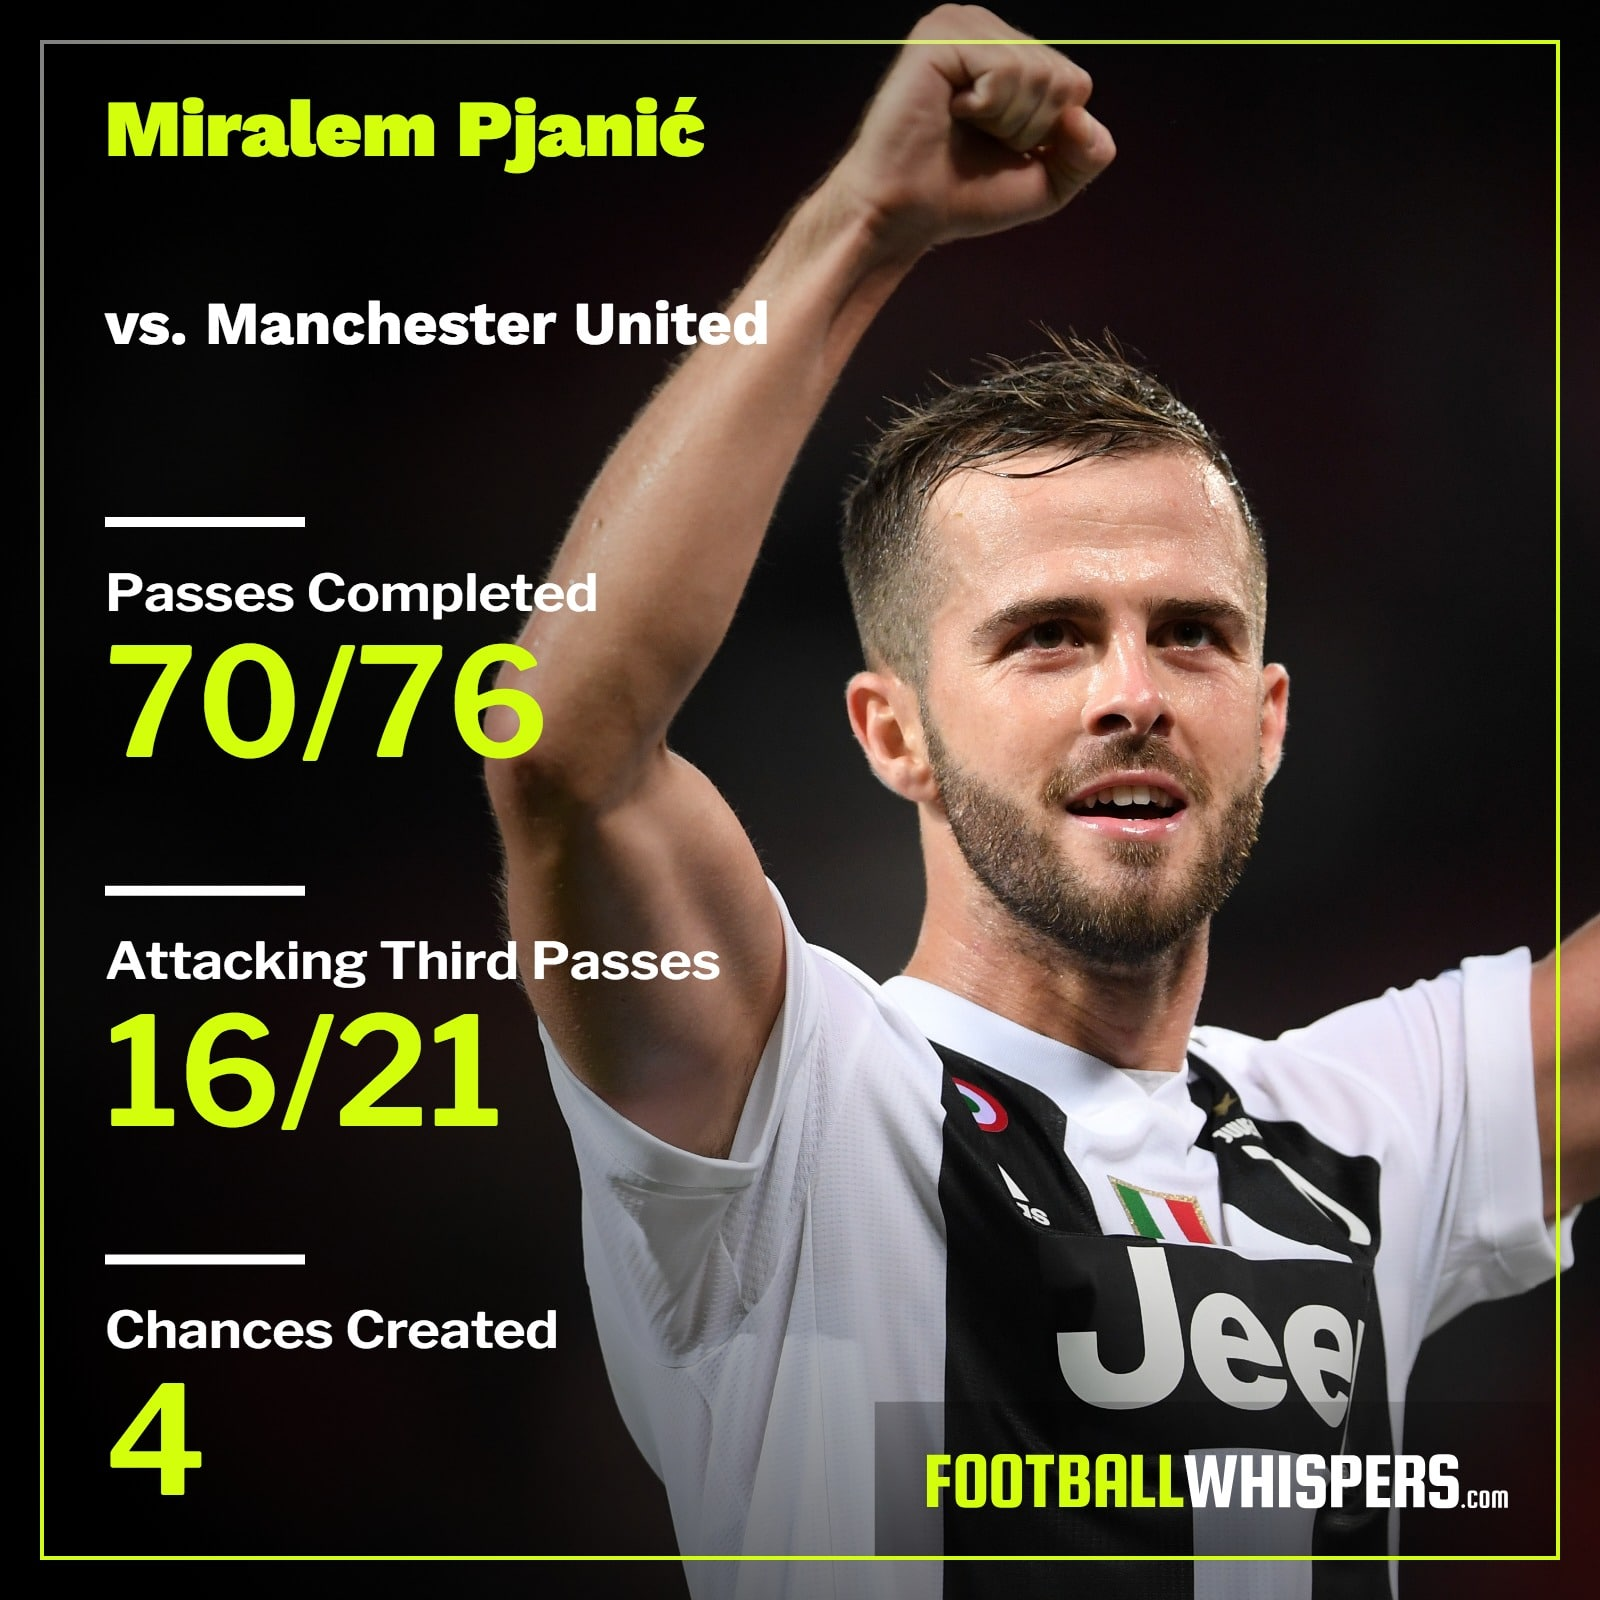 Miralem Pjanic's stats for Juventus vs. Manchester United